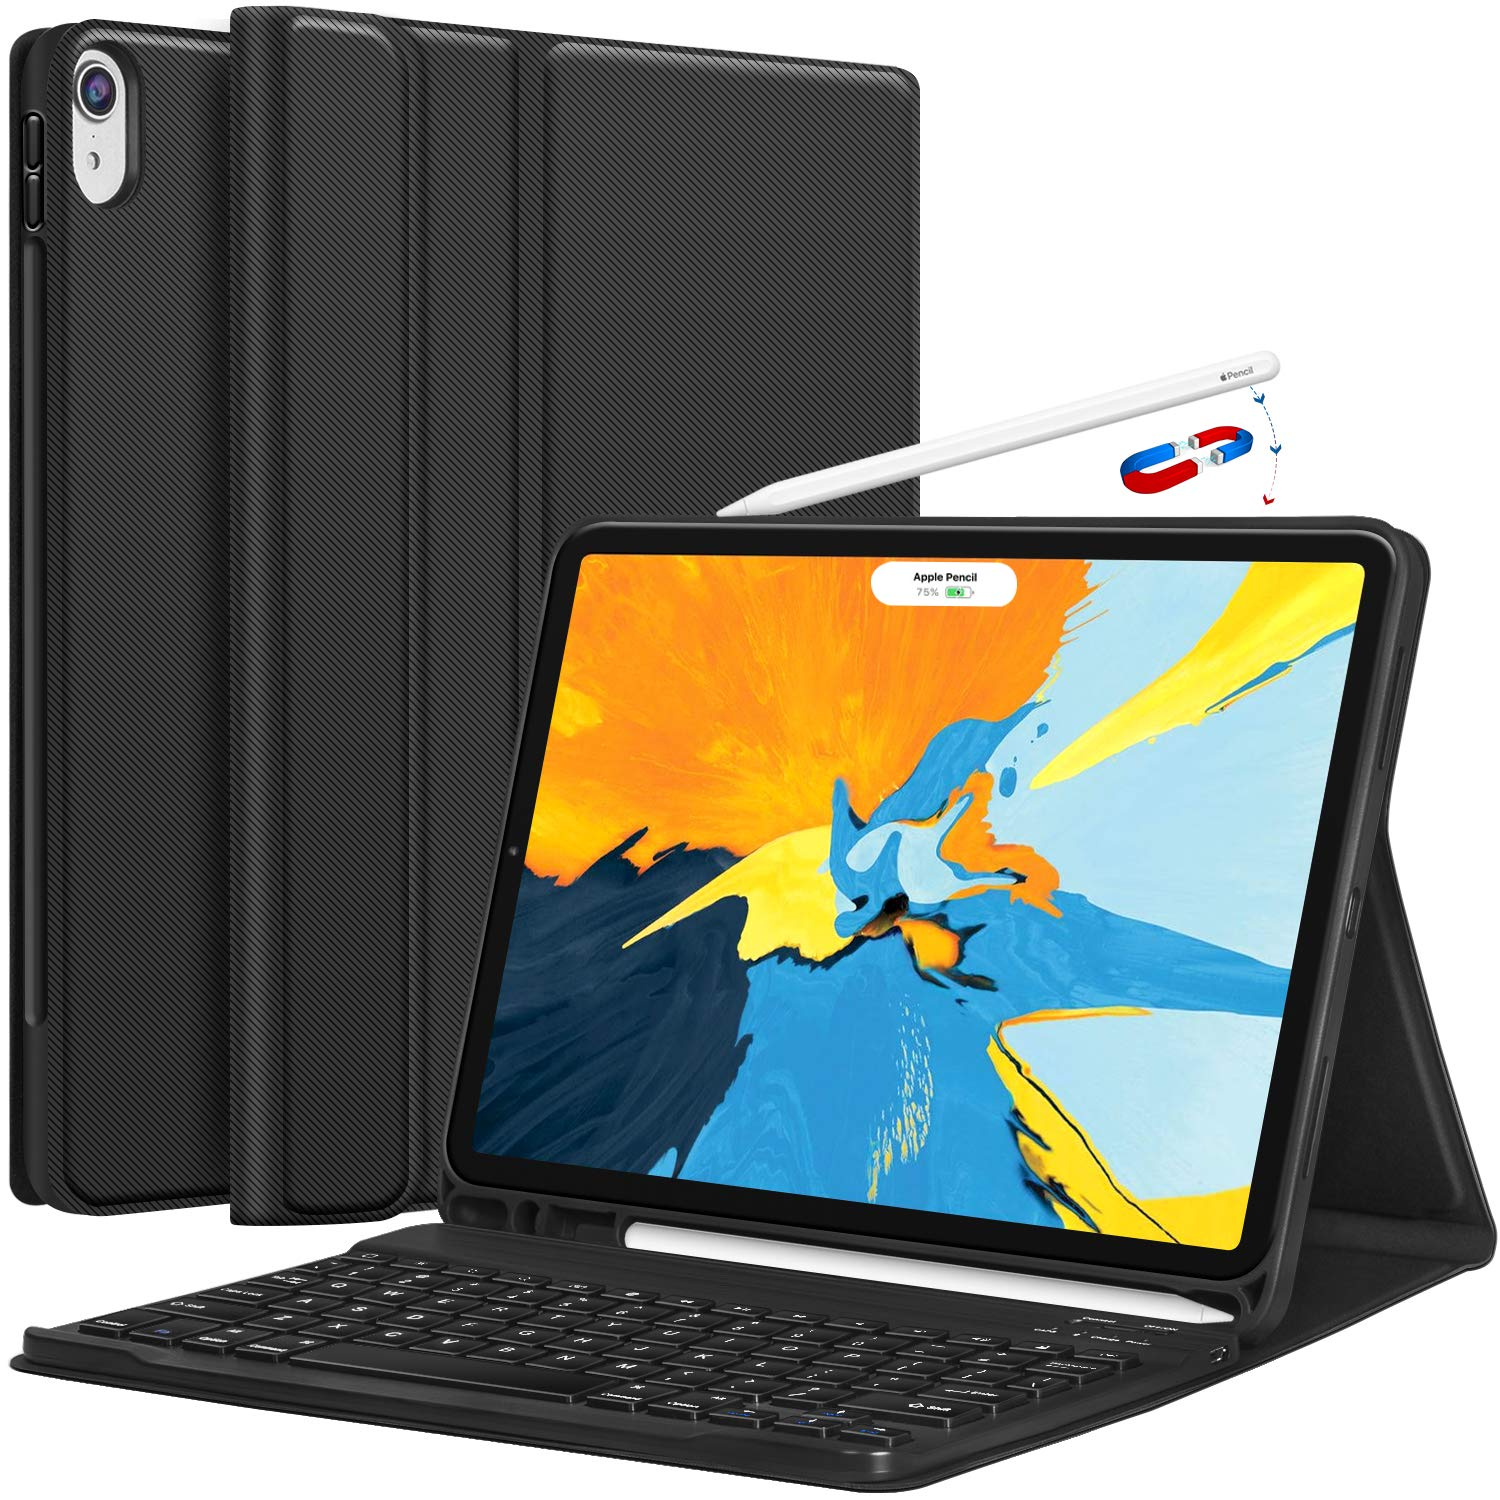 25 Best iPad Keyboard Cases for Any iPads in 2019